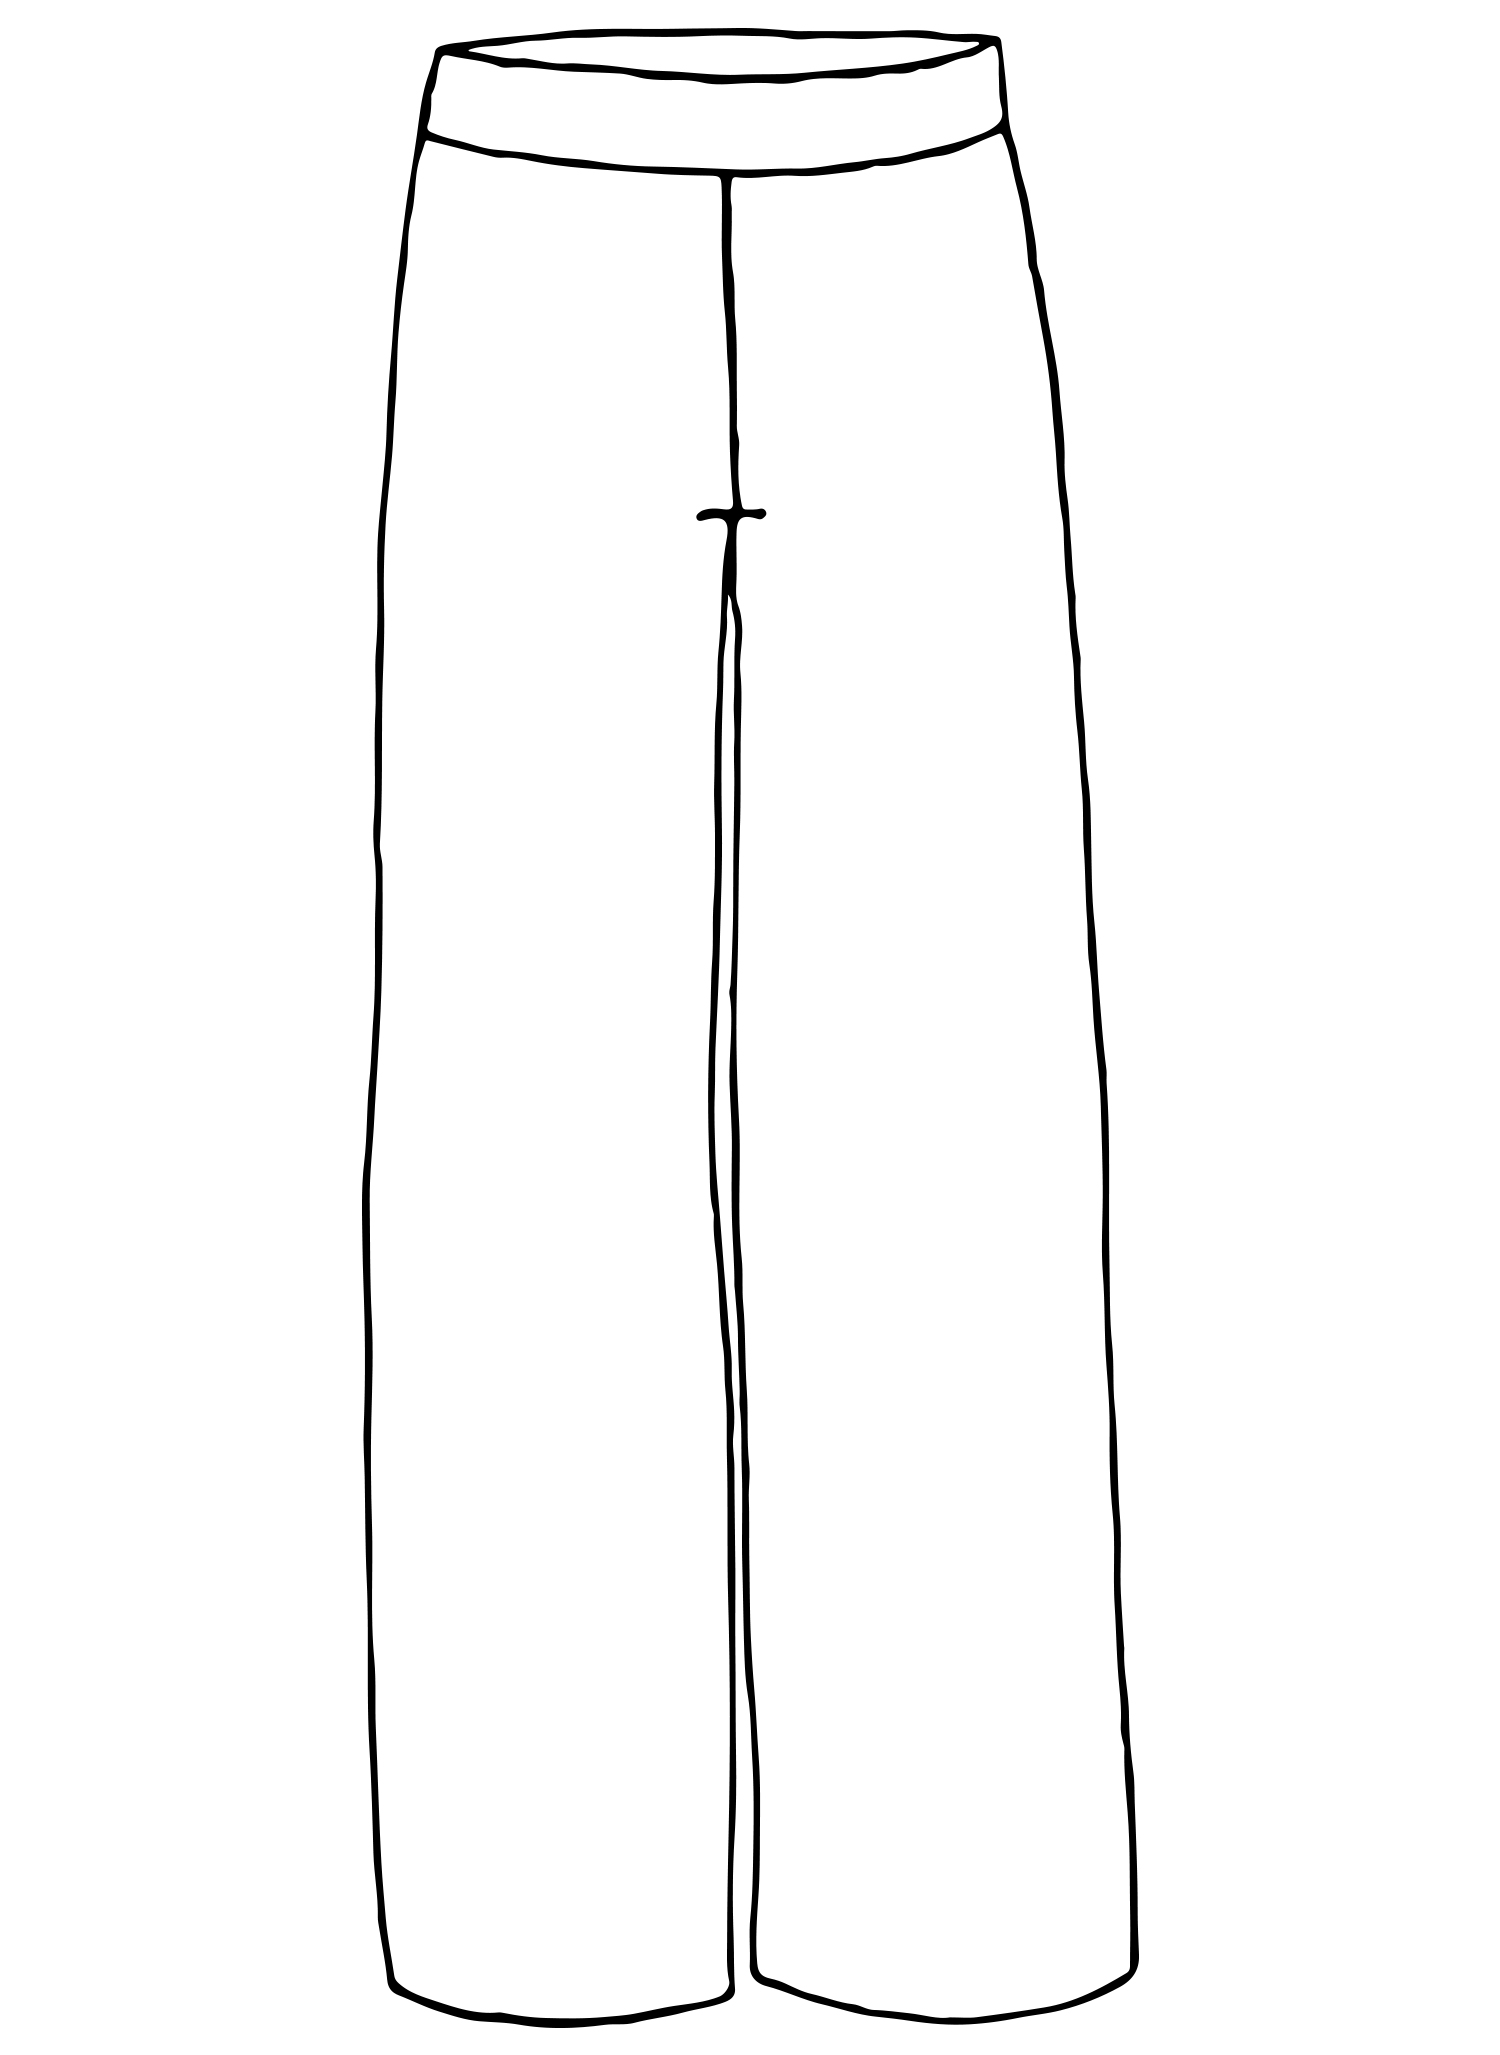 Perfect Pant sketch image